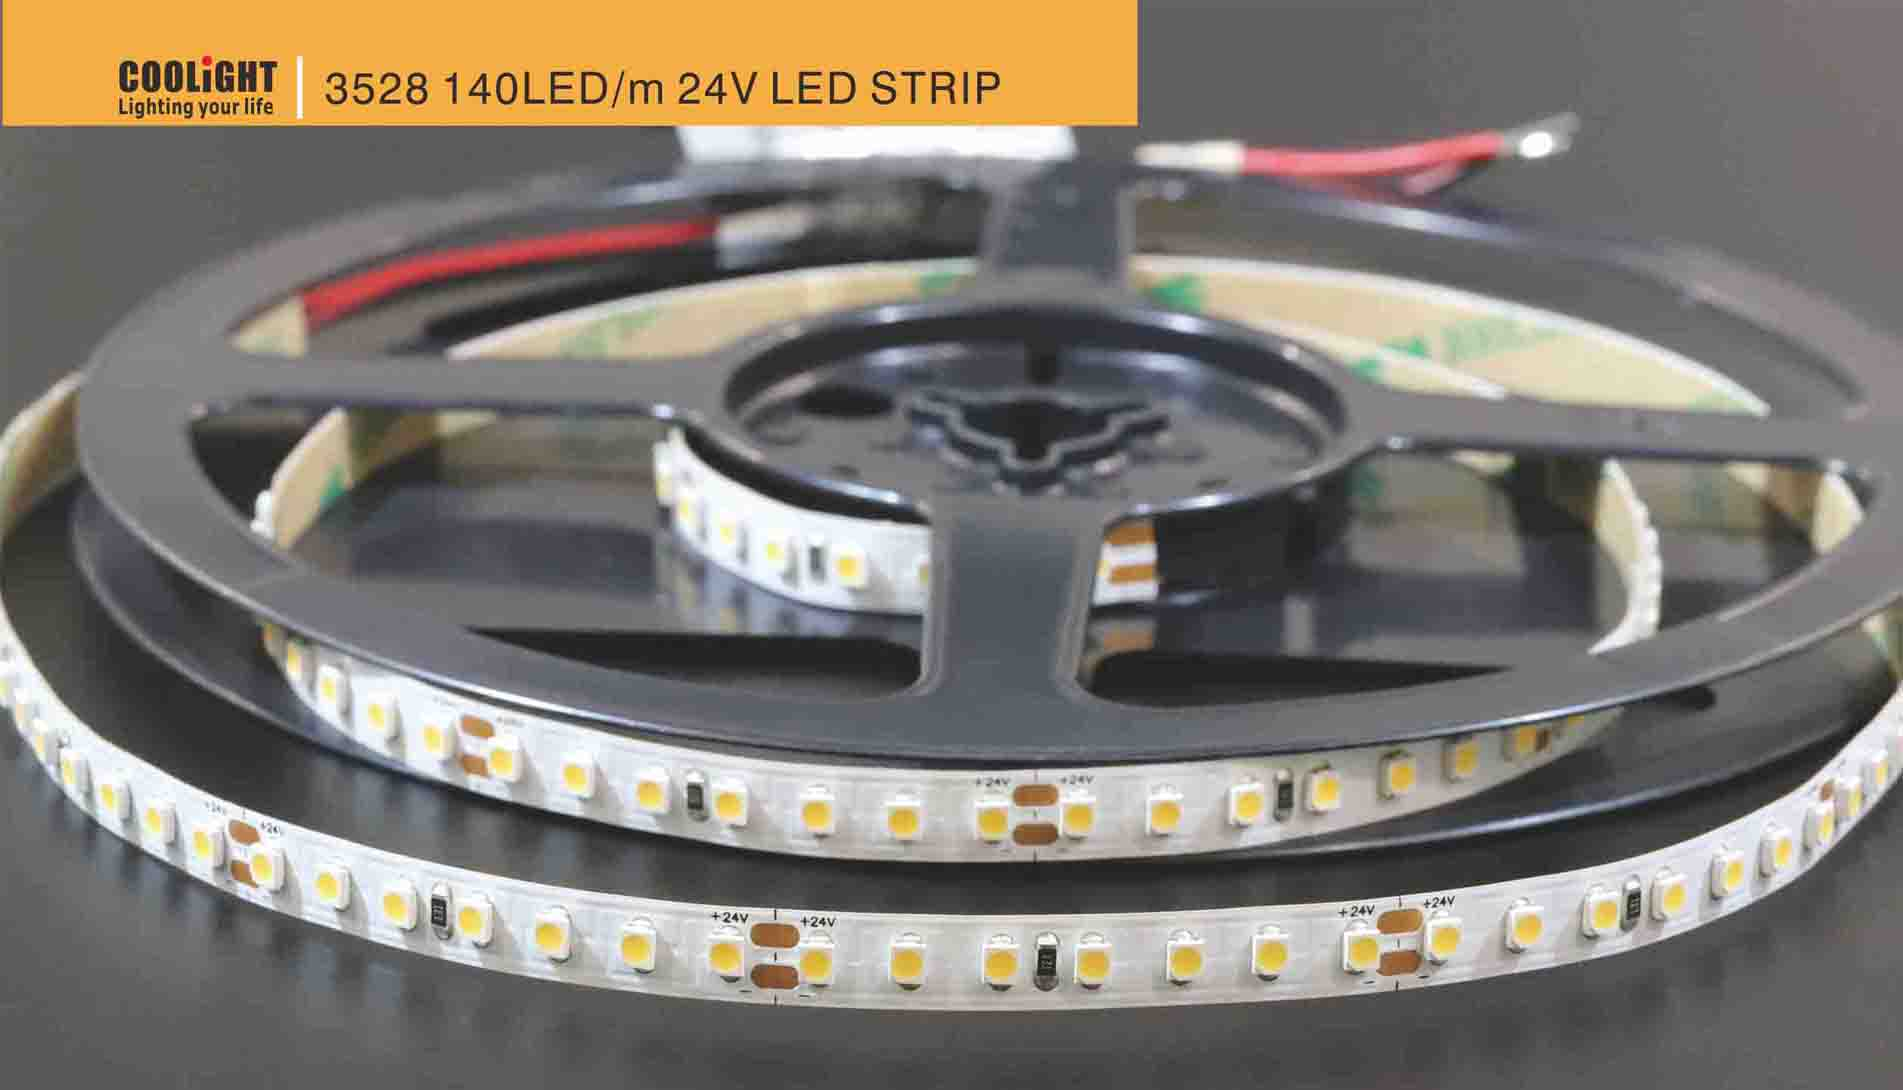 3528 140led/m 24v led strip